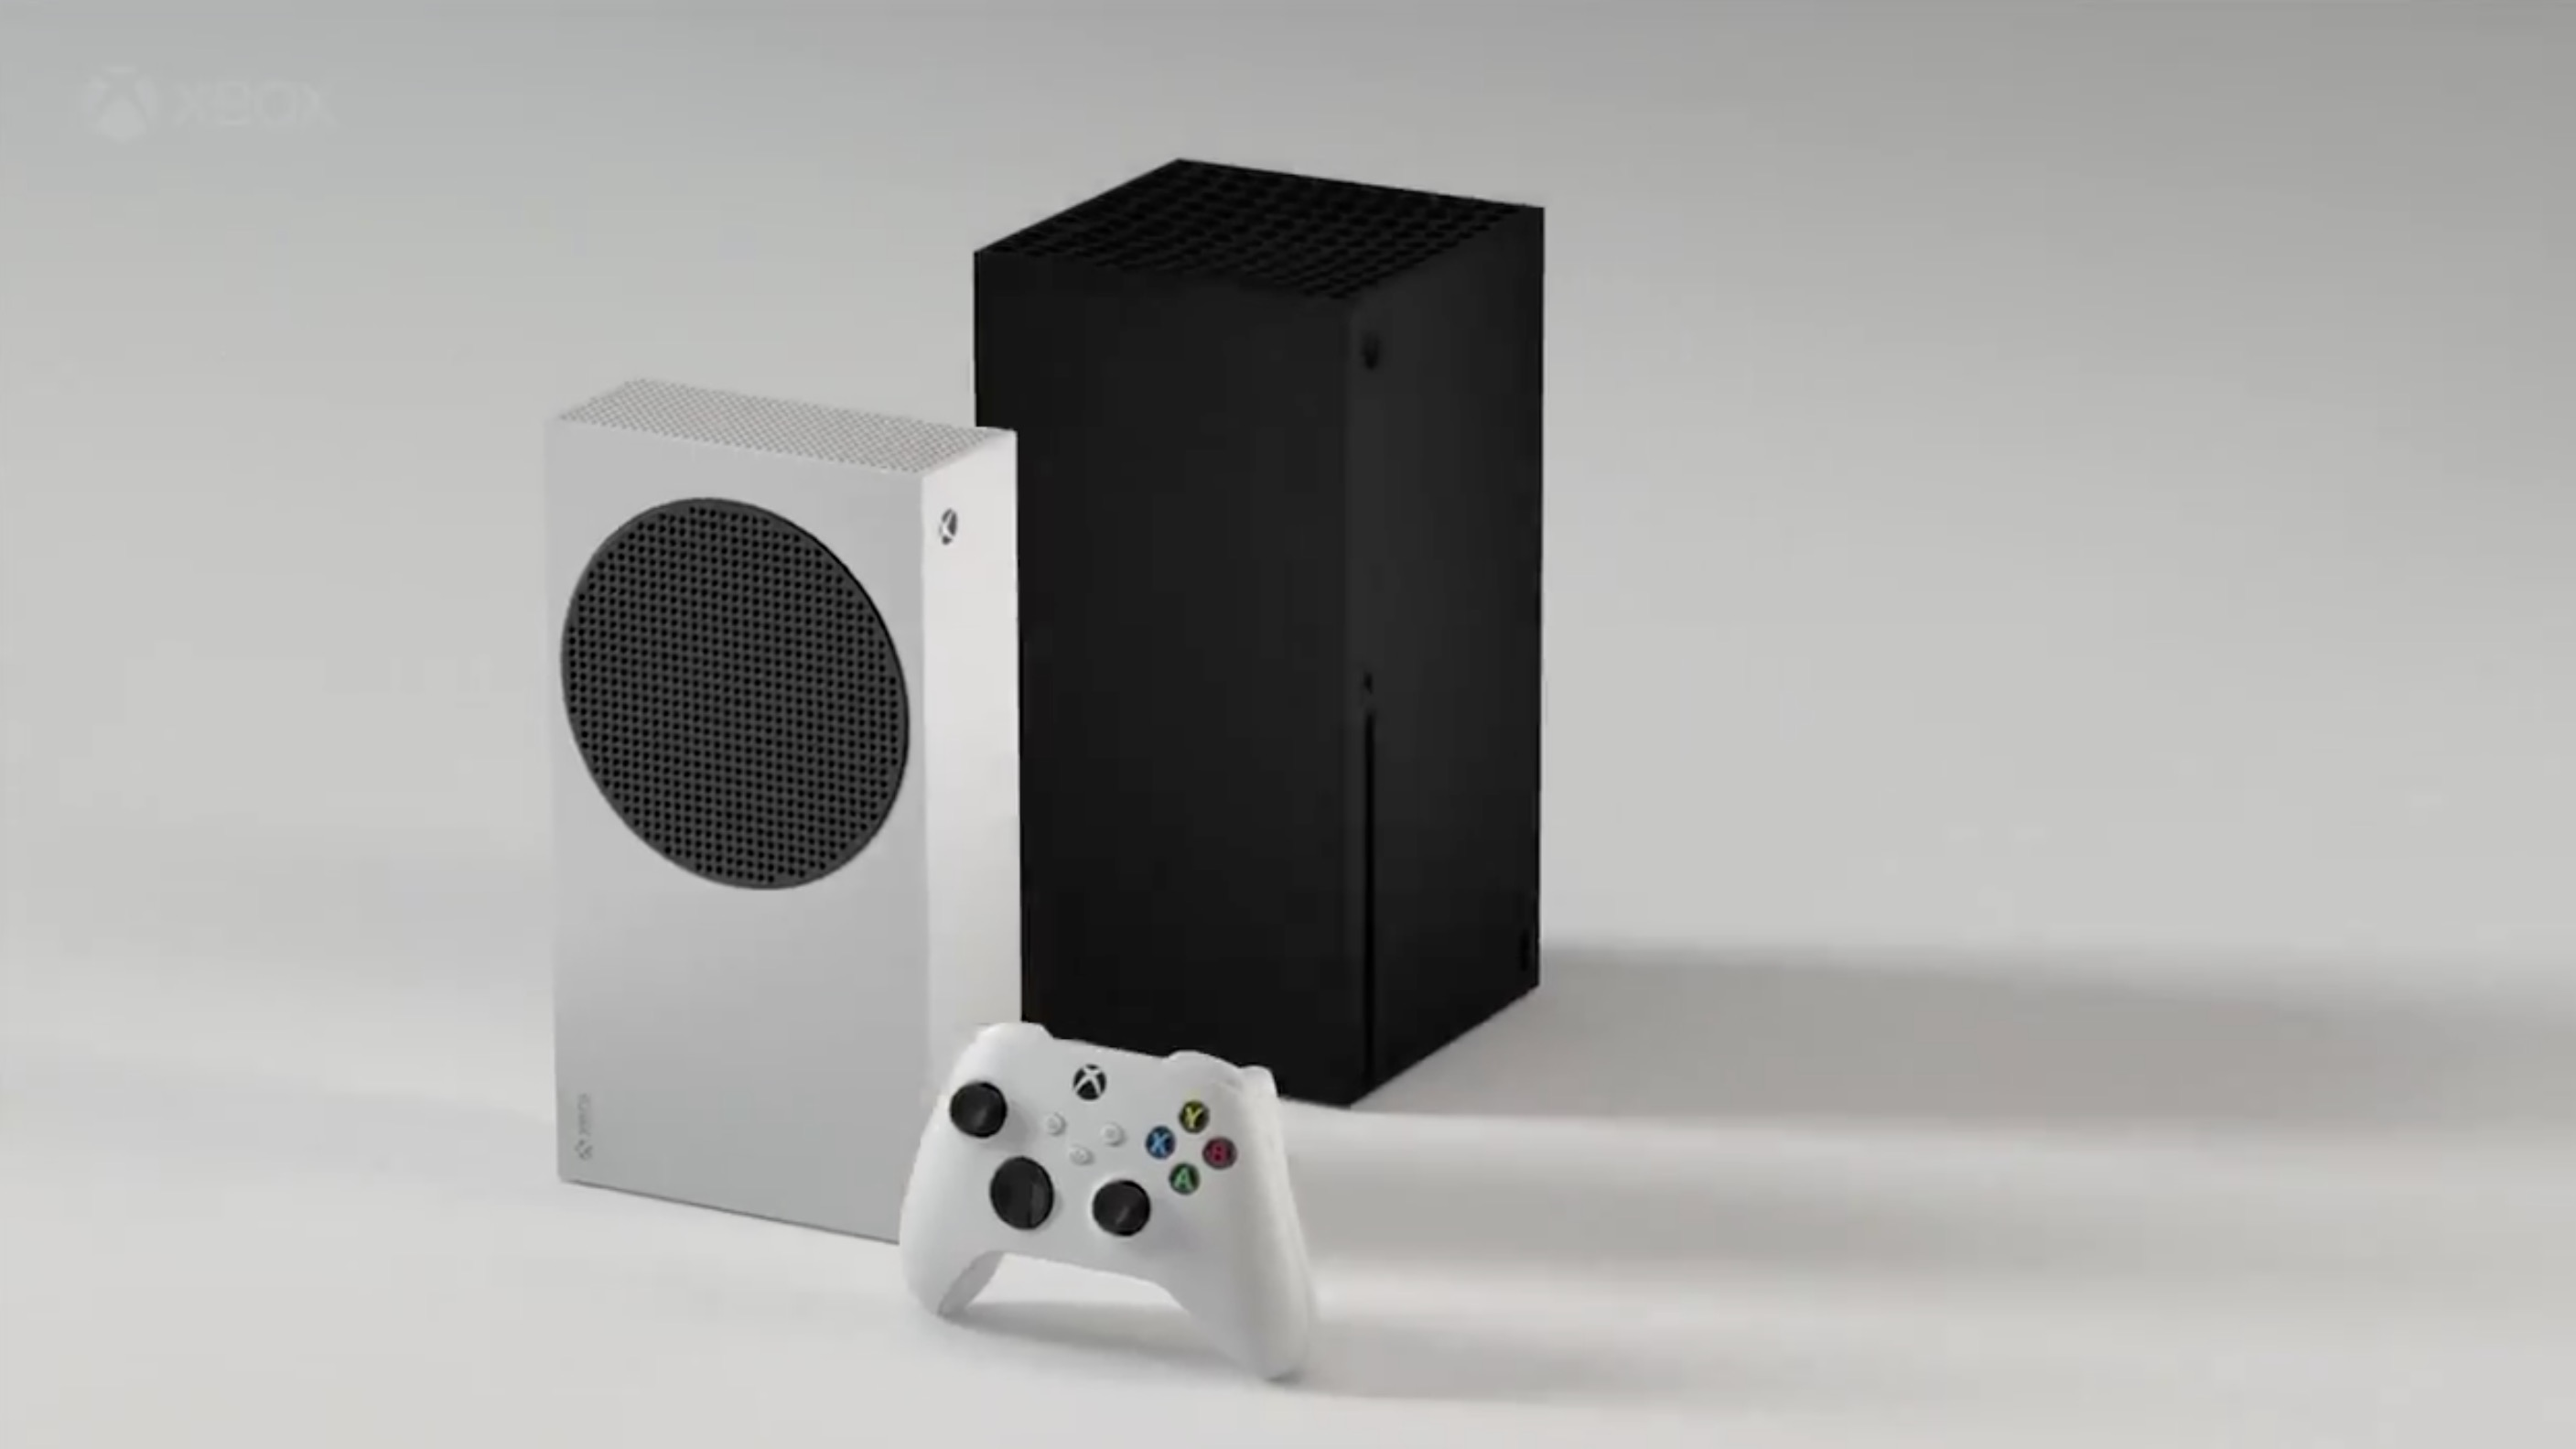 Xbox Series X vs Xbox Series S: which should you buy? | What Hi-Fi?